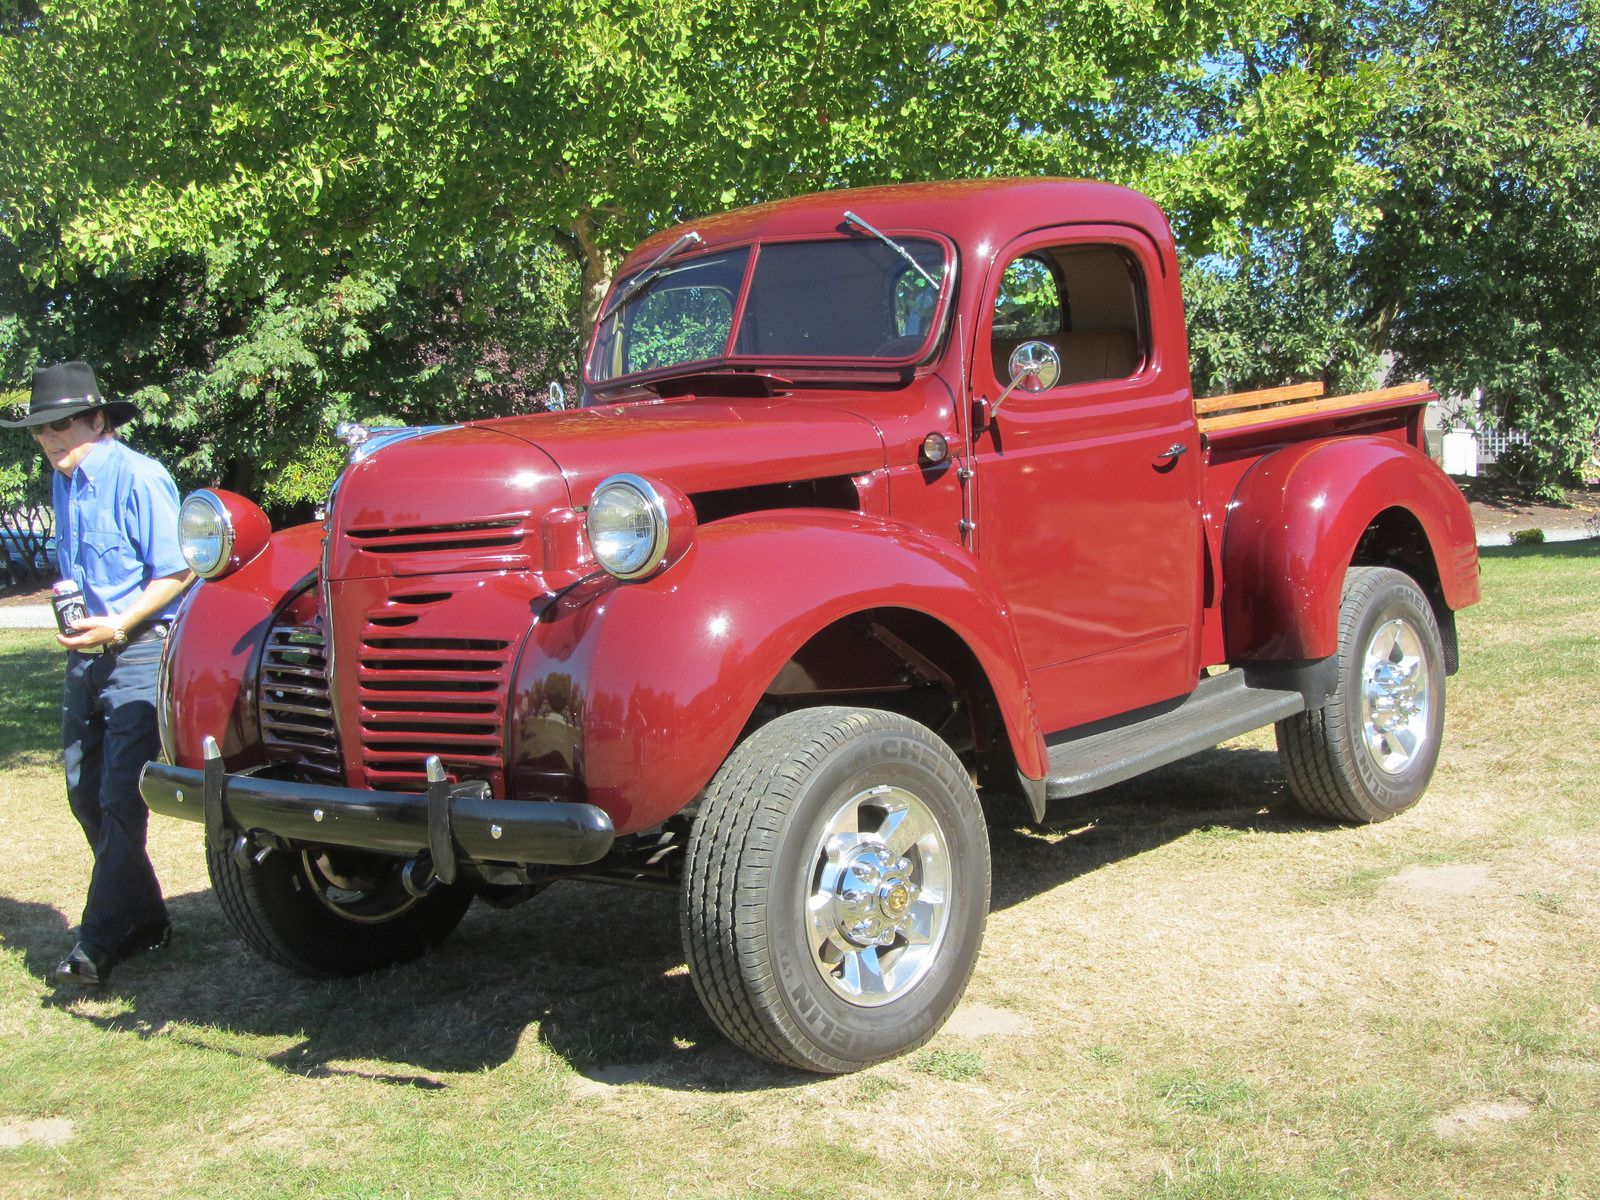 hight resolution of dodge power wagon 1944 maintenance restoration of old vintage vehicles the material for new cogs casters gears pads could be cast polyamide which i cast